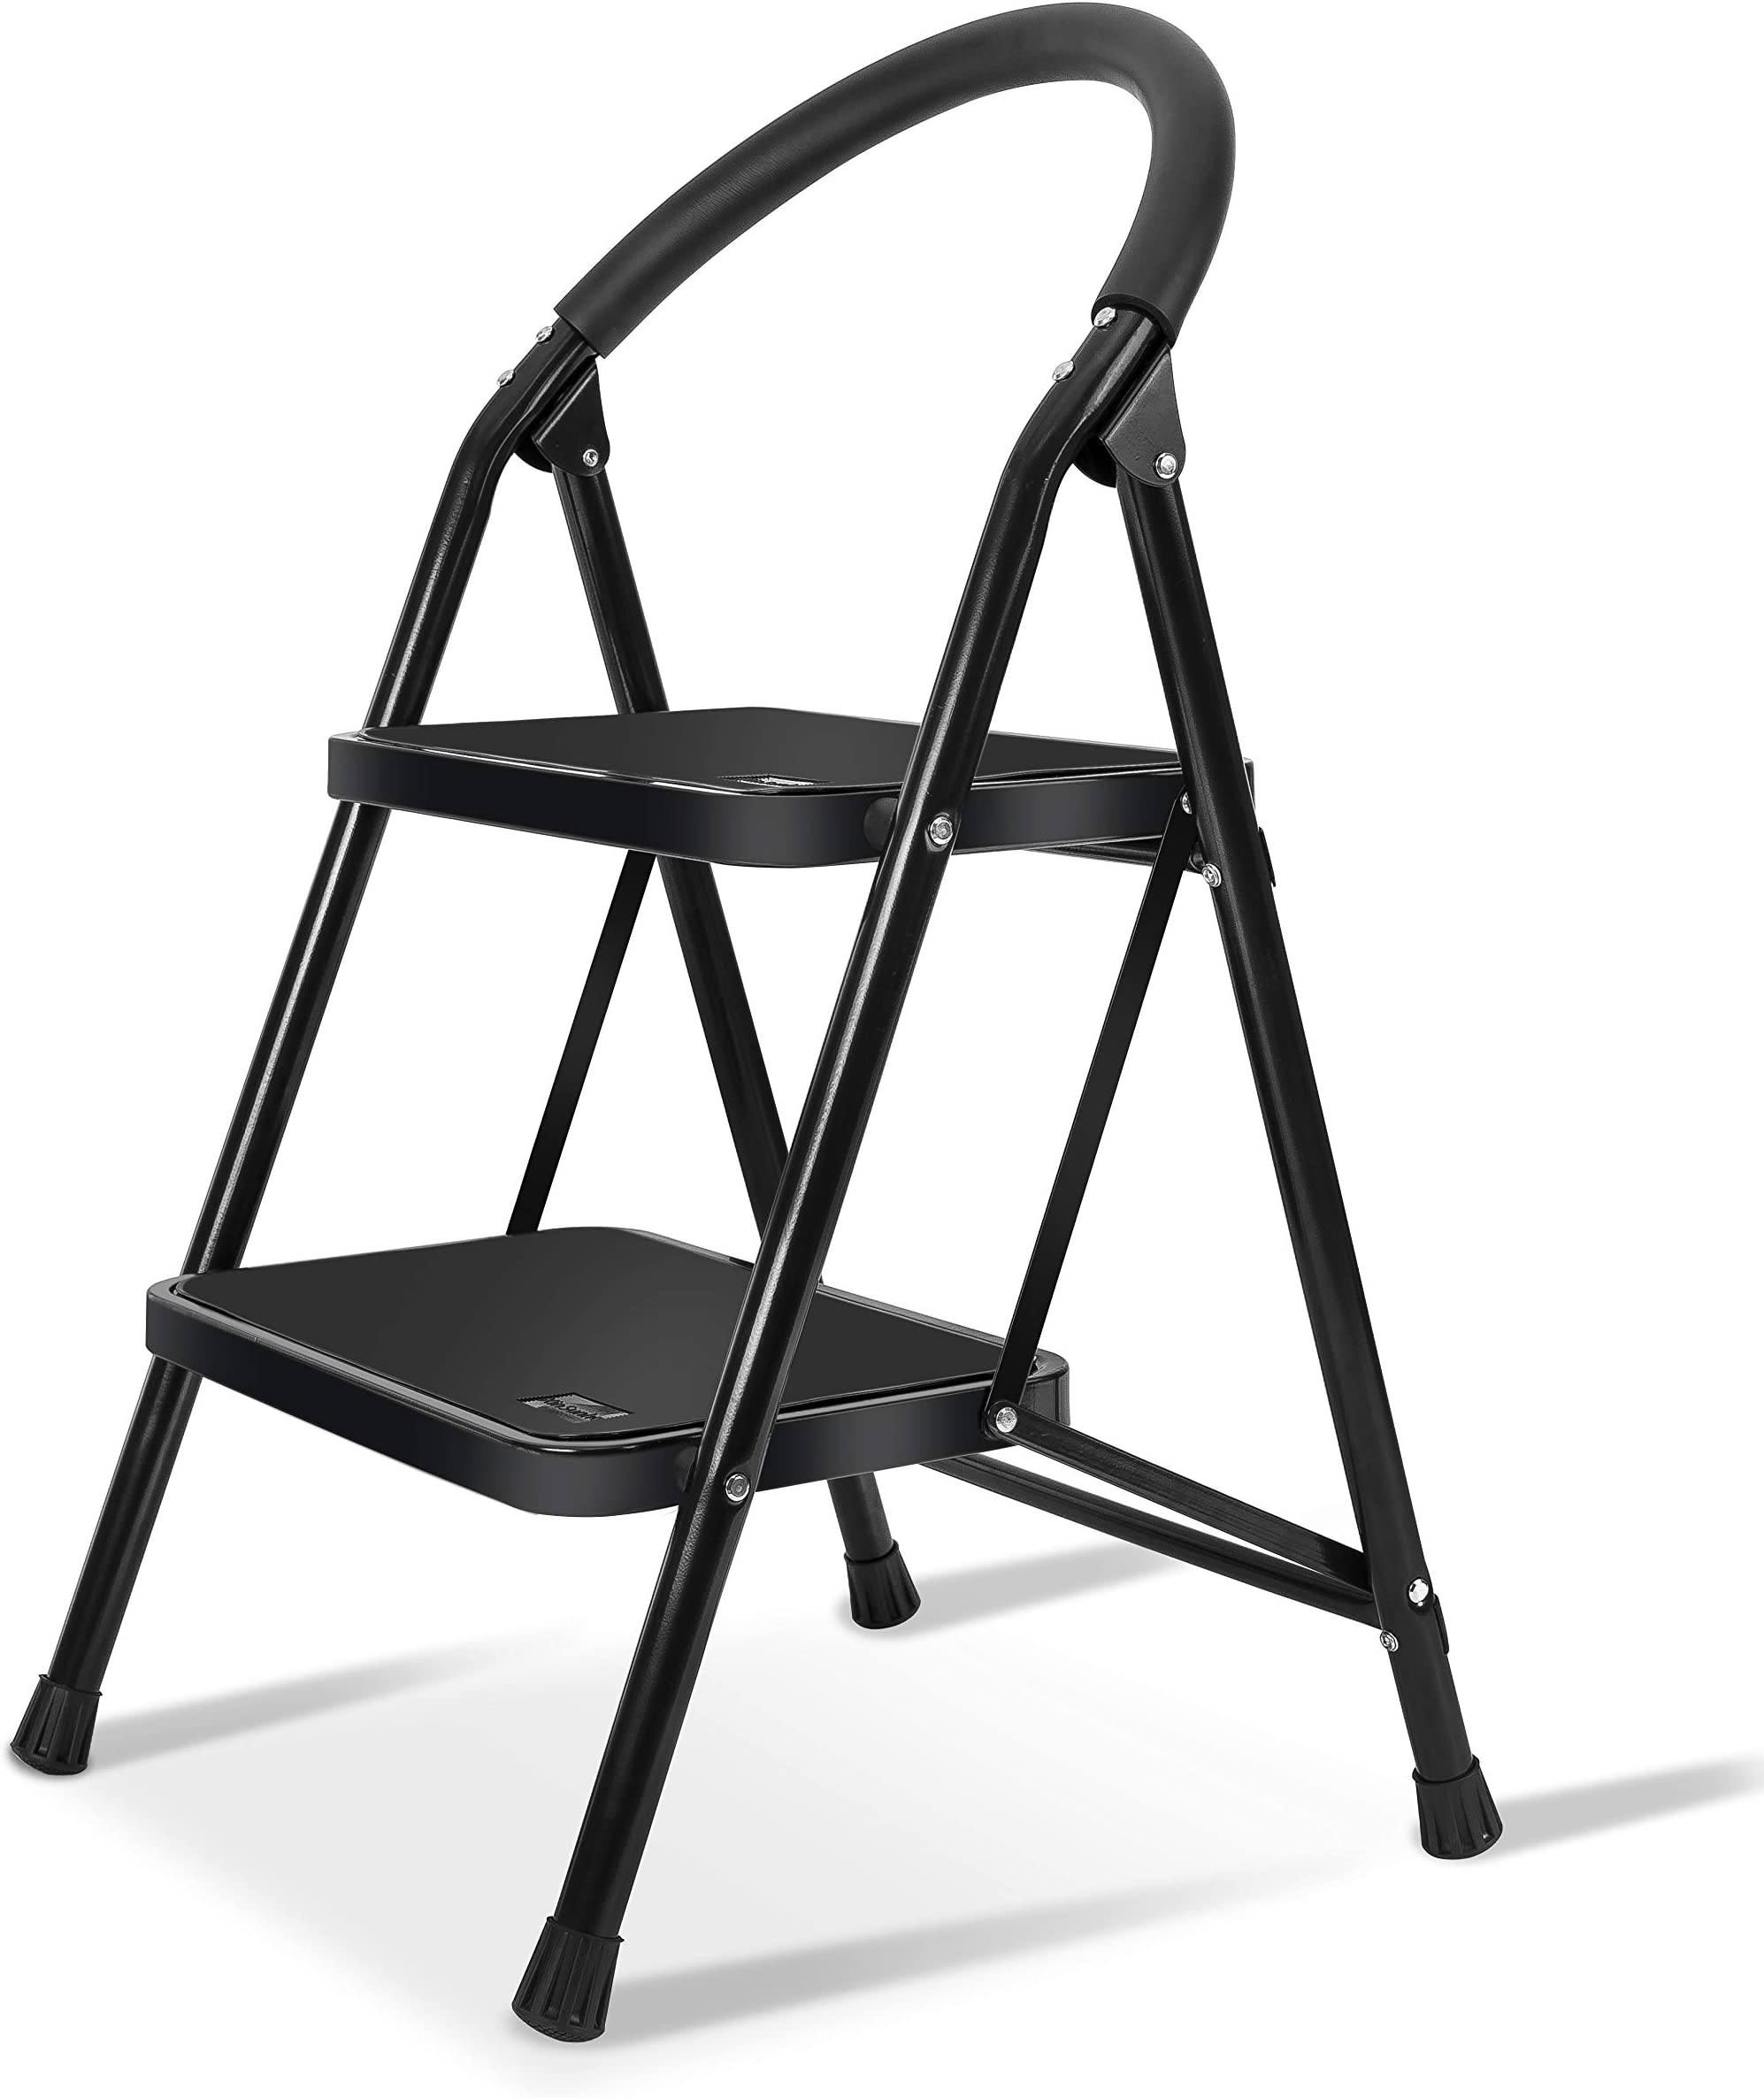 XinSunho 2 Step Ladder,Small Folding Sturdy Step Stool for Kitchen Home Closet,Wide Pedal 330lbs Heavy Duty Ladder for Adults Seniors,Black